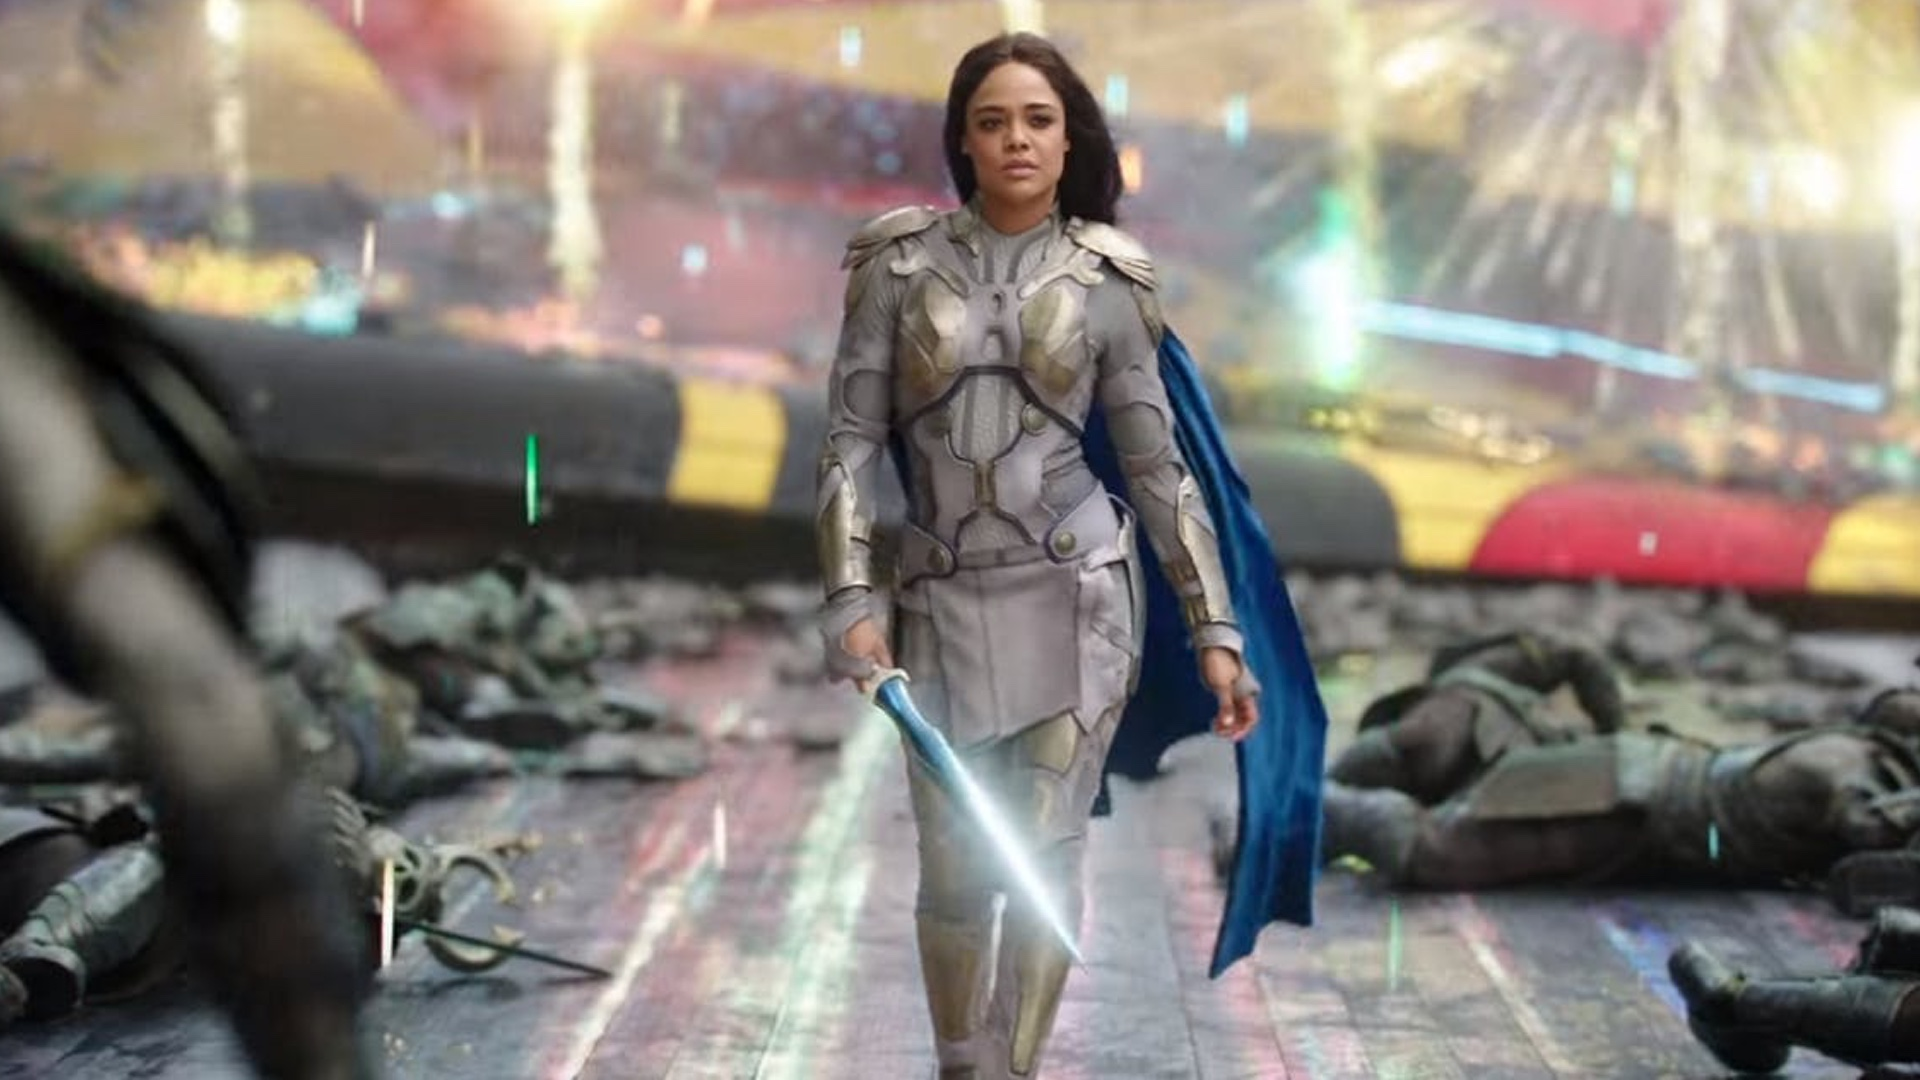 tessa-thompson-is-officially-mcus-first-lgbtq-hero-as-she-will-look-for-a-queen-in-thor-love-and-thunder-social.jpg